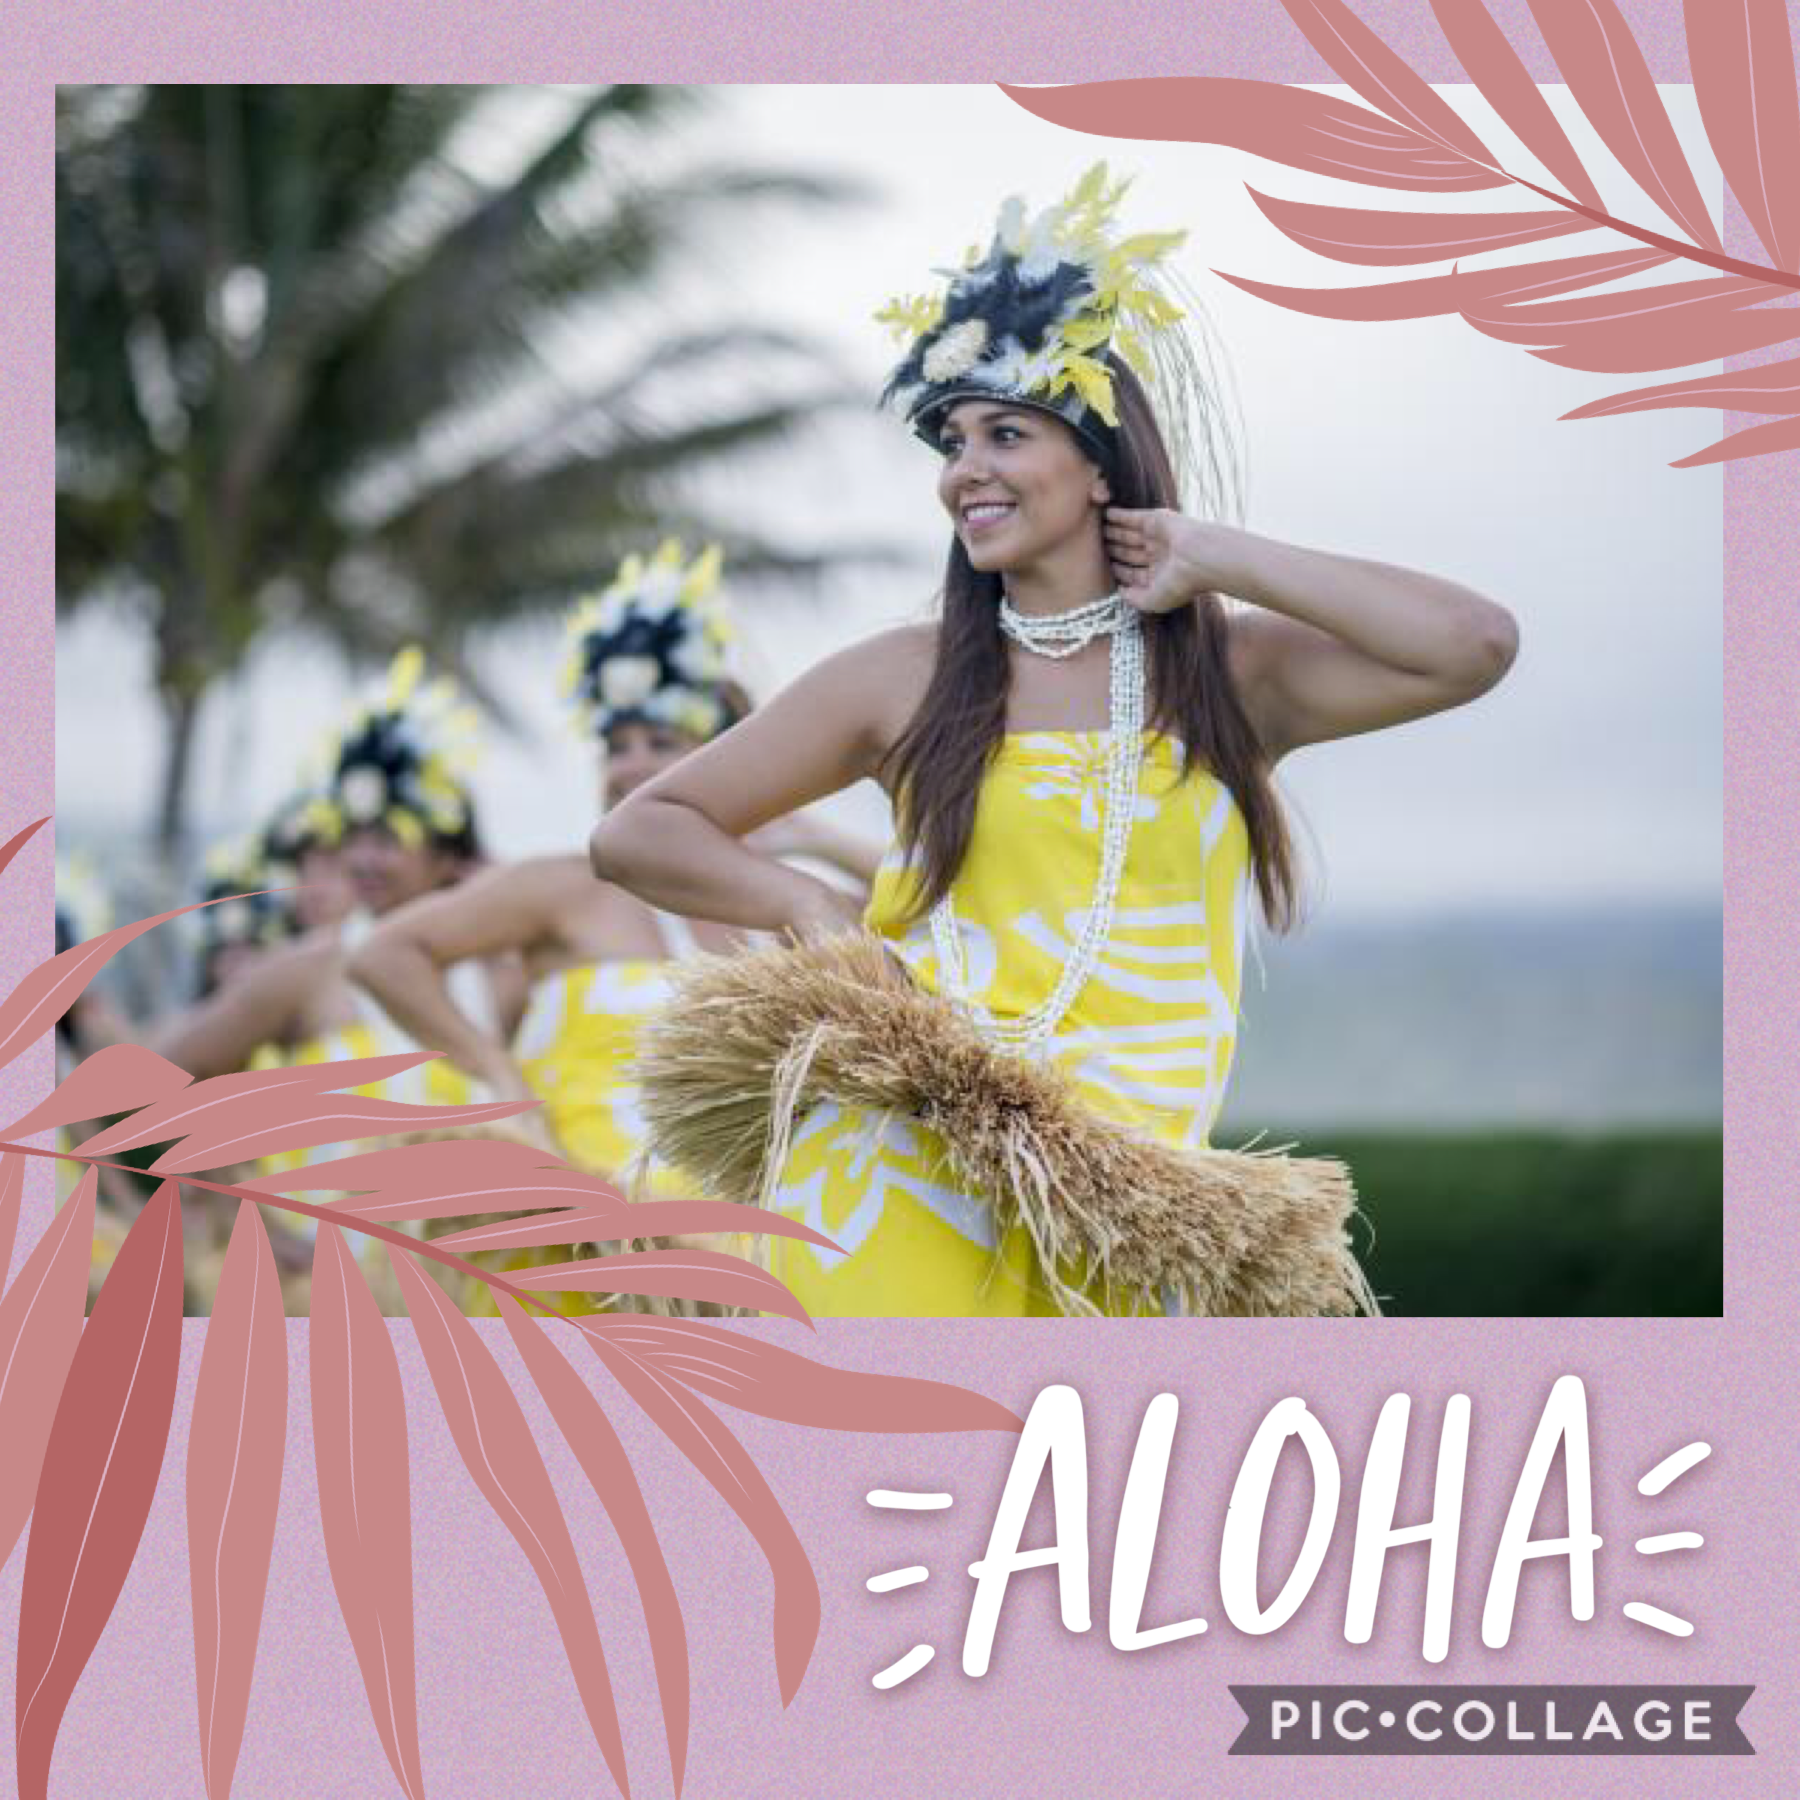 Although we can't head down to the beach tonight... ~ALOHA~